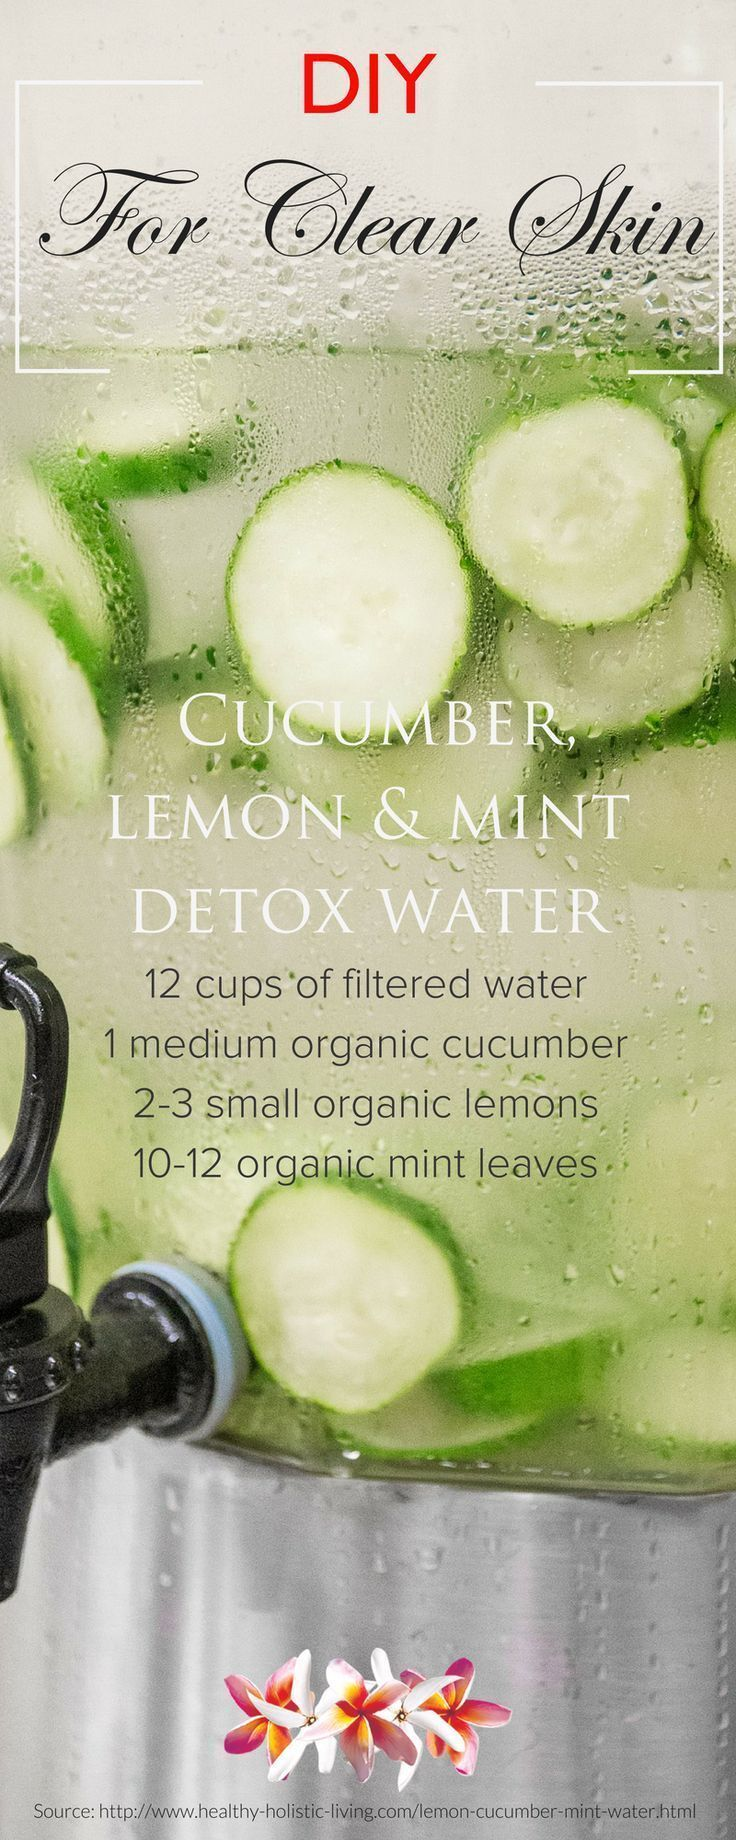 5 detox water recipes for maintaining a healthy clear skin! Discover DIY beauty recipes and natural skin care tips at http://www.purefiji.com/blog/drink-clear-glowing-skin/   Spa Water